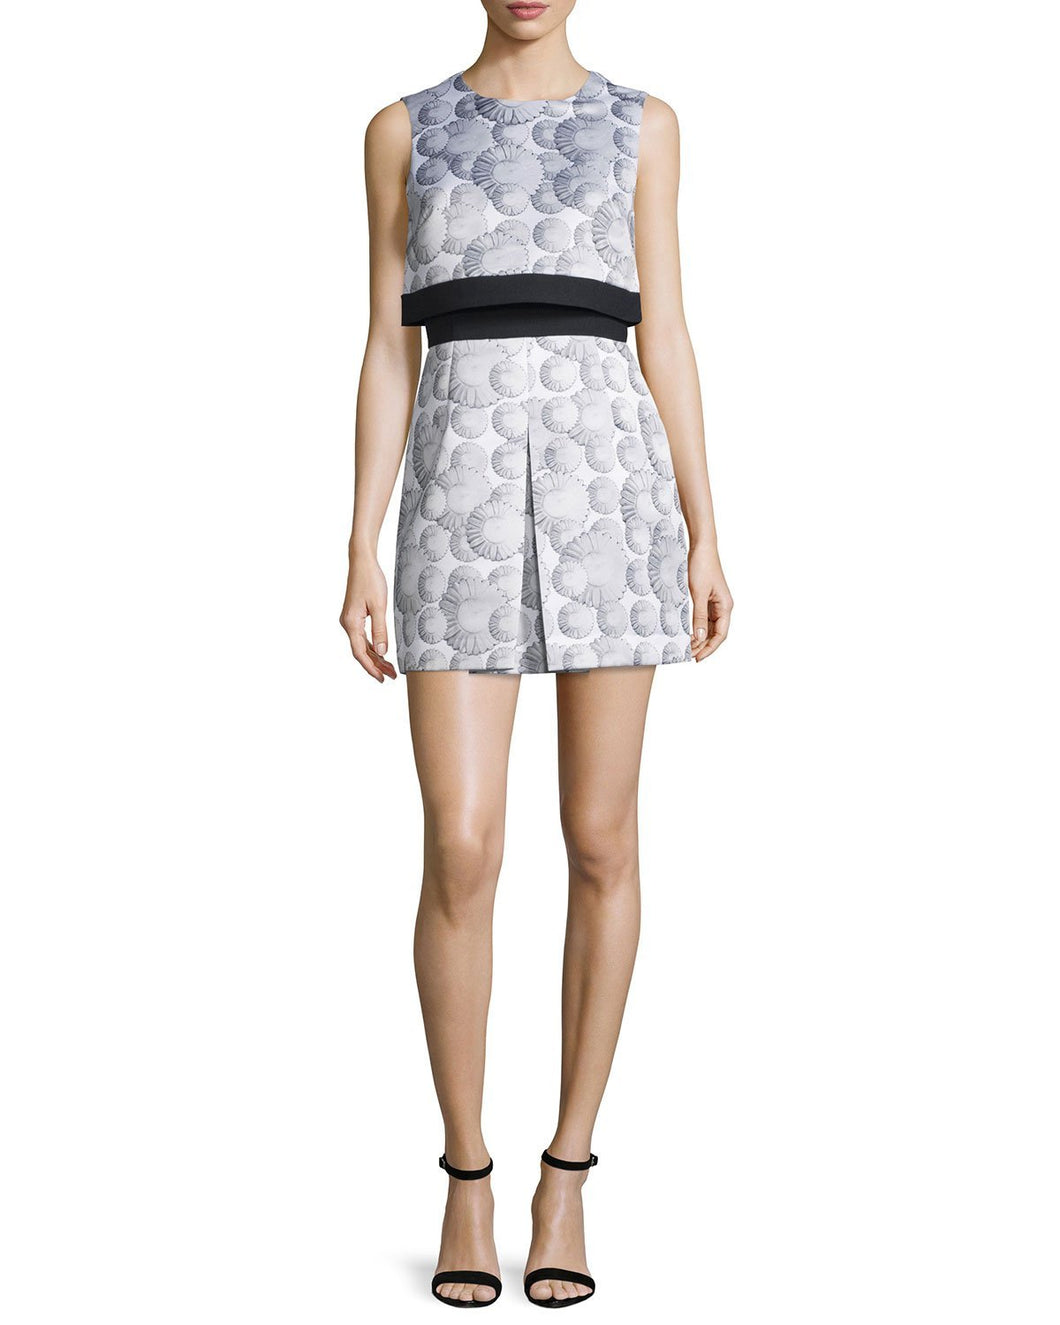 Cynthia Rowley Sleeveless Printed Popover Dress - Vancelette Global Art Acquisitions